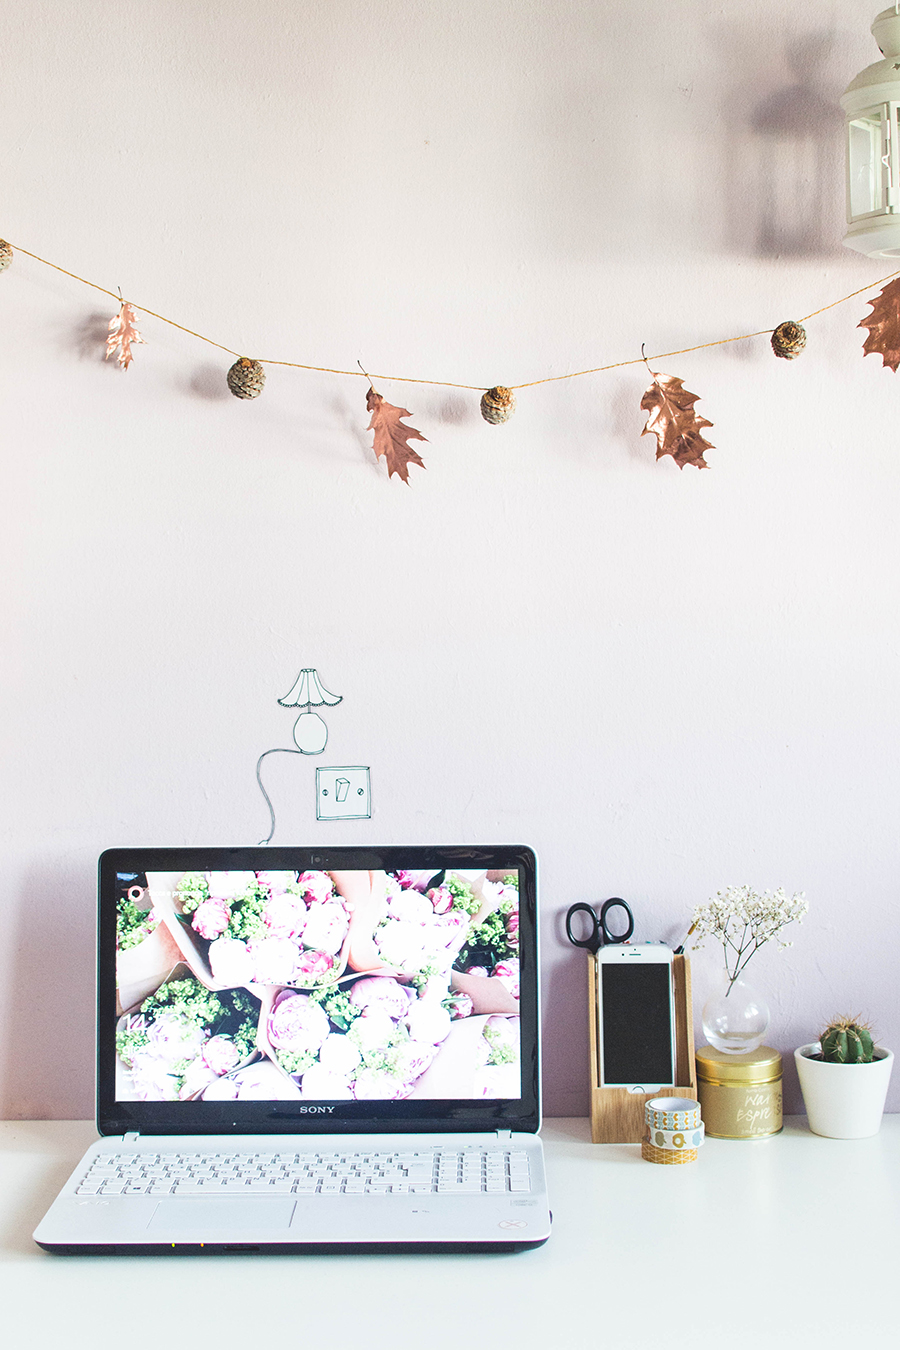 Easy DIY Autumn Garland Tutorial - perfect for your workspace!